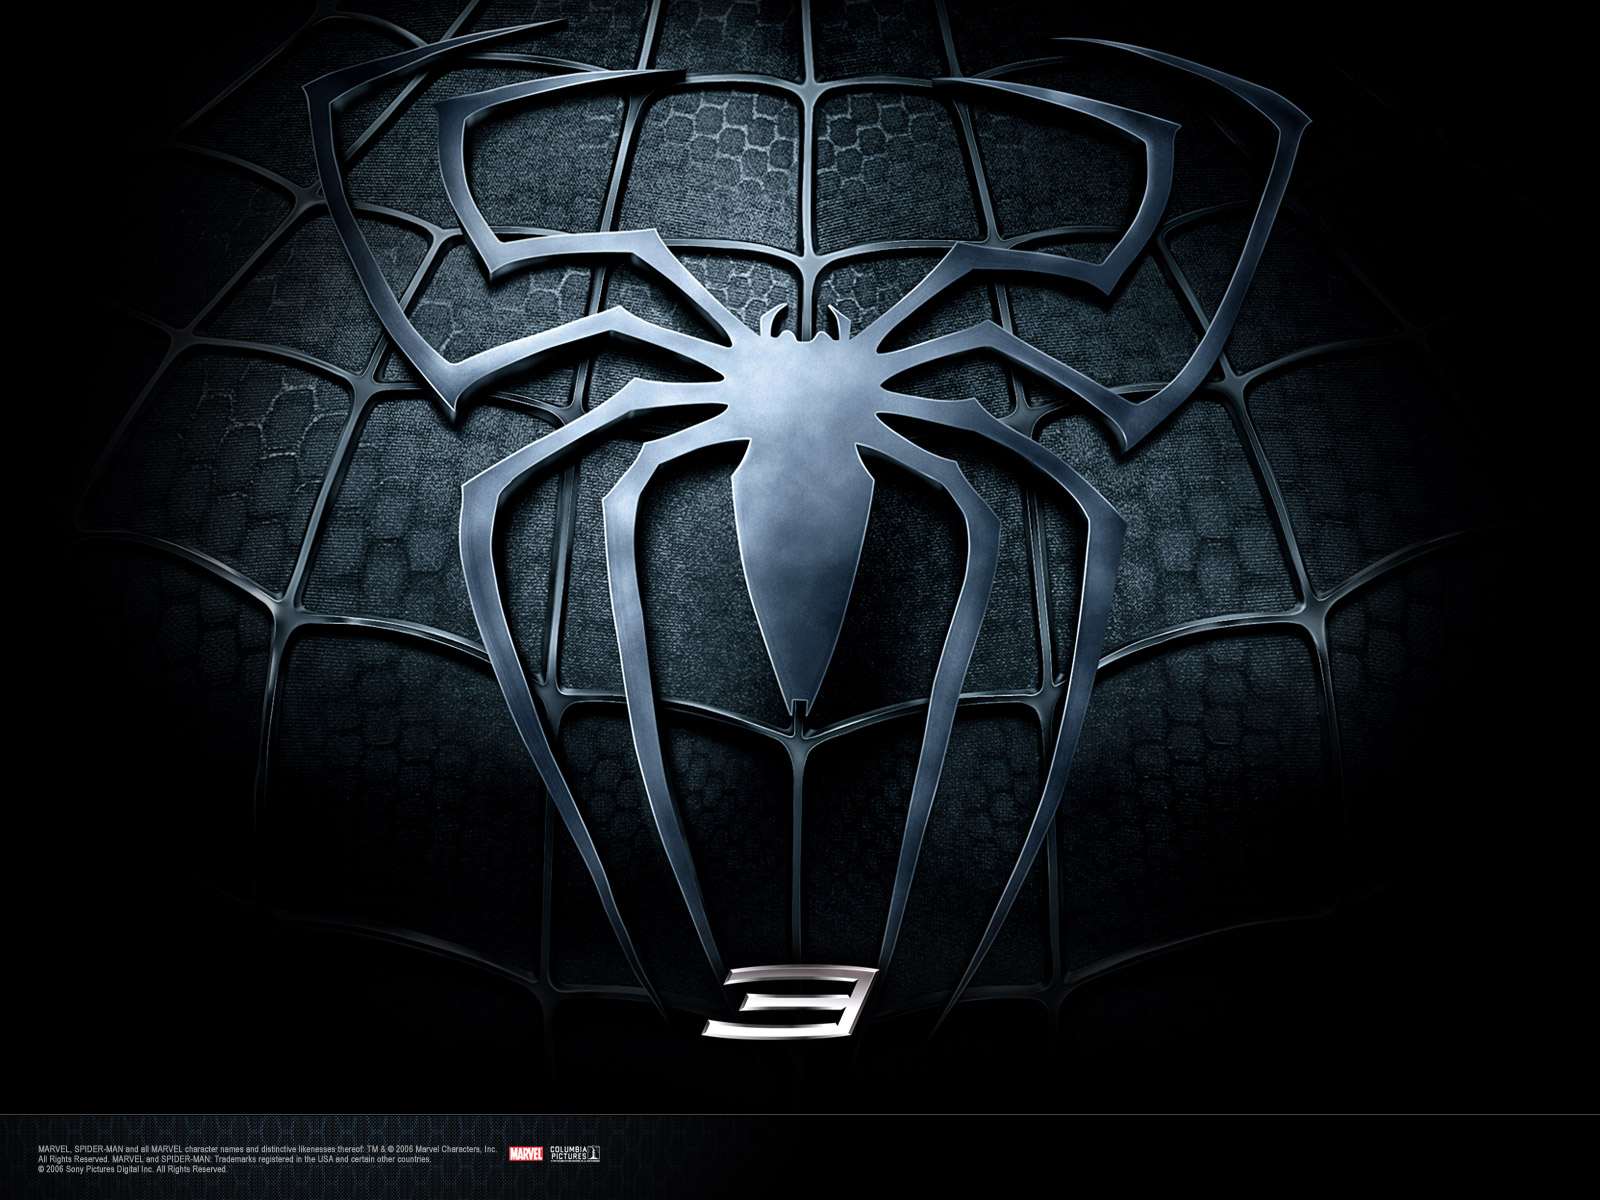 Wallpaper Spiderman costume noir spider